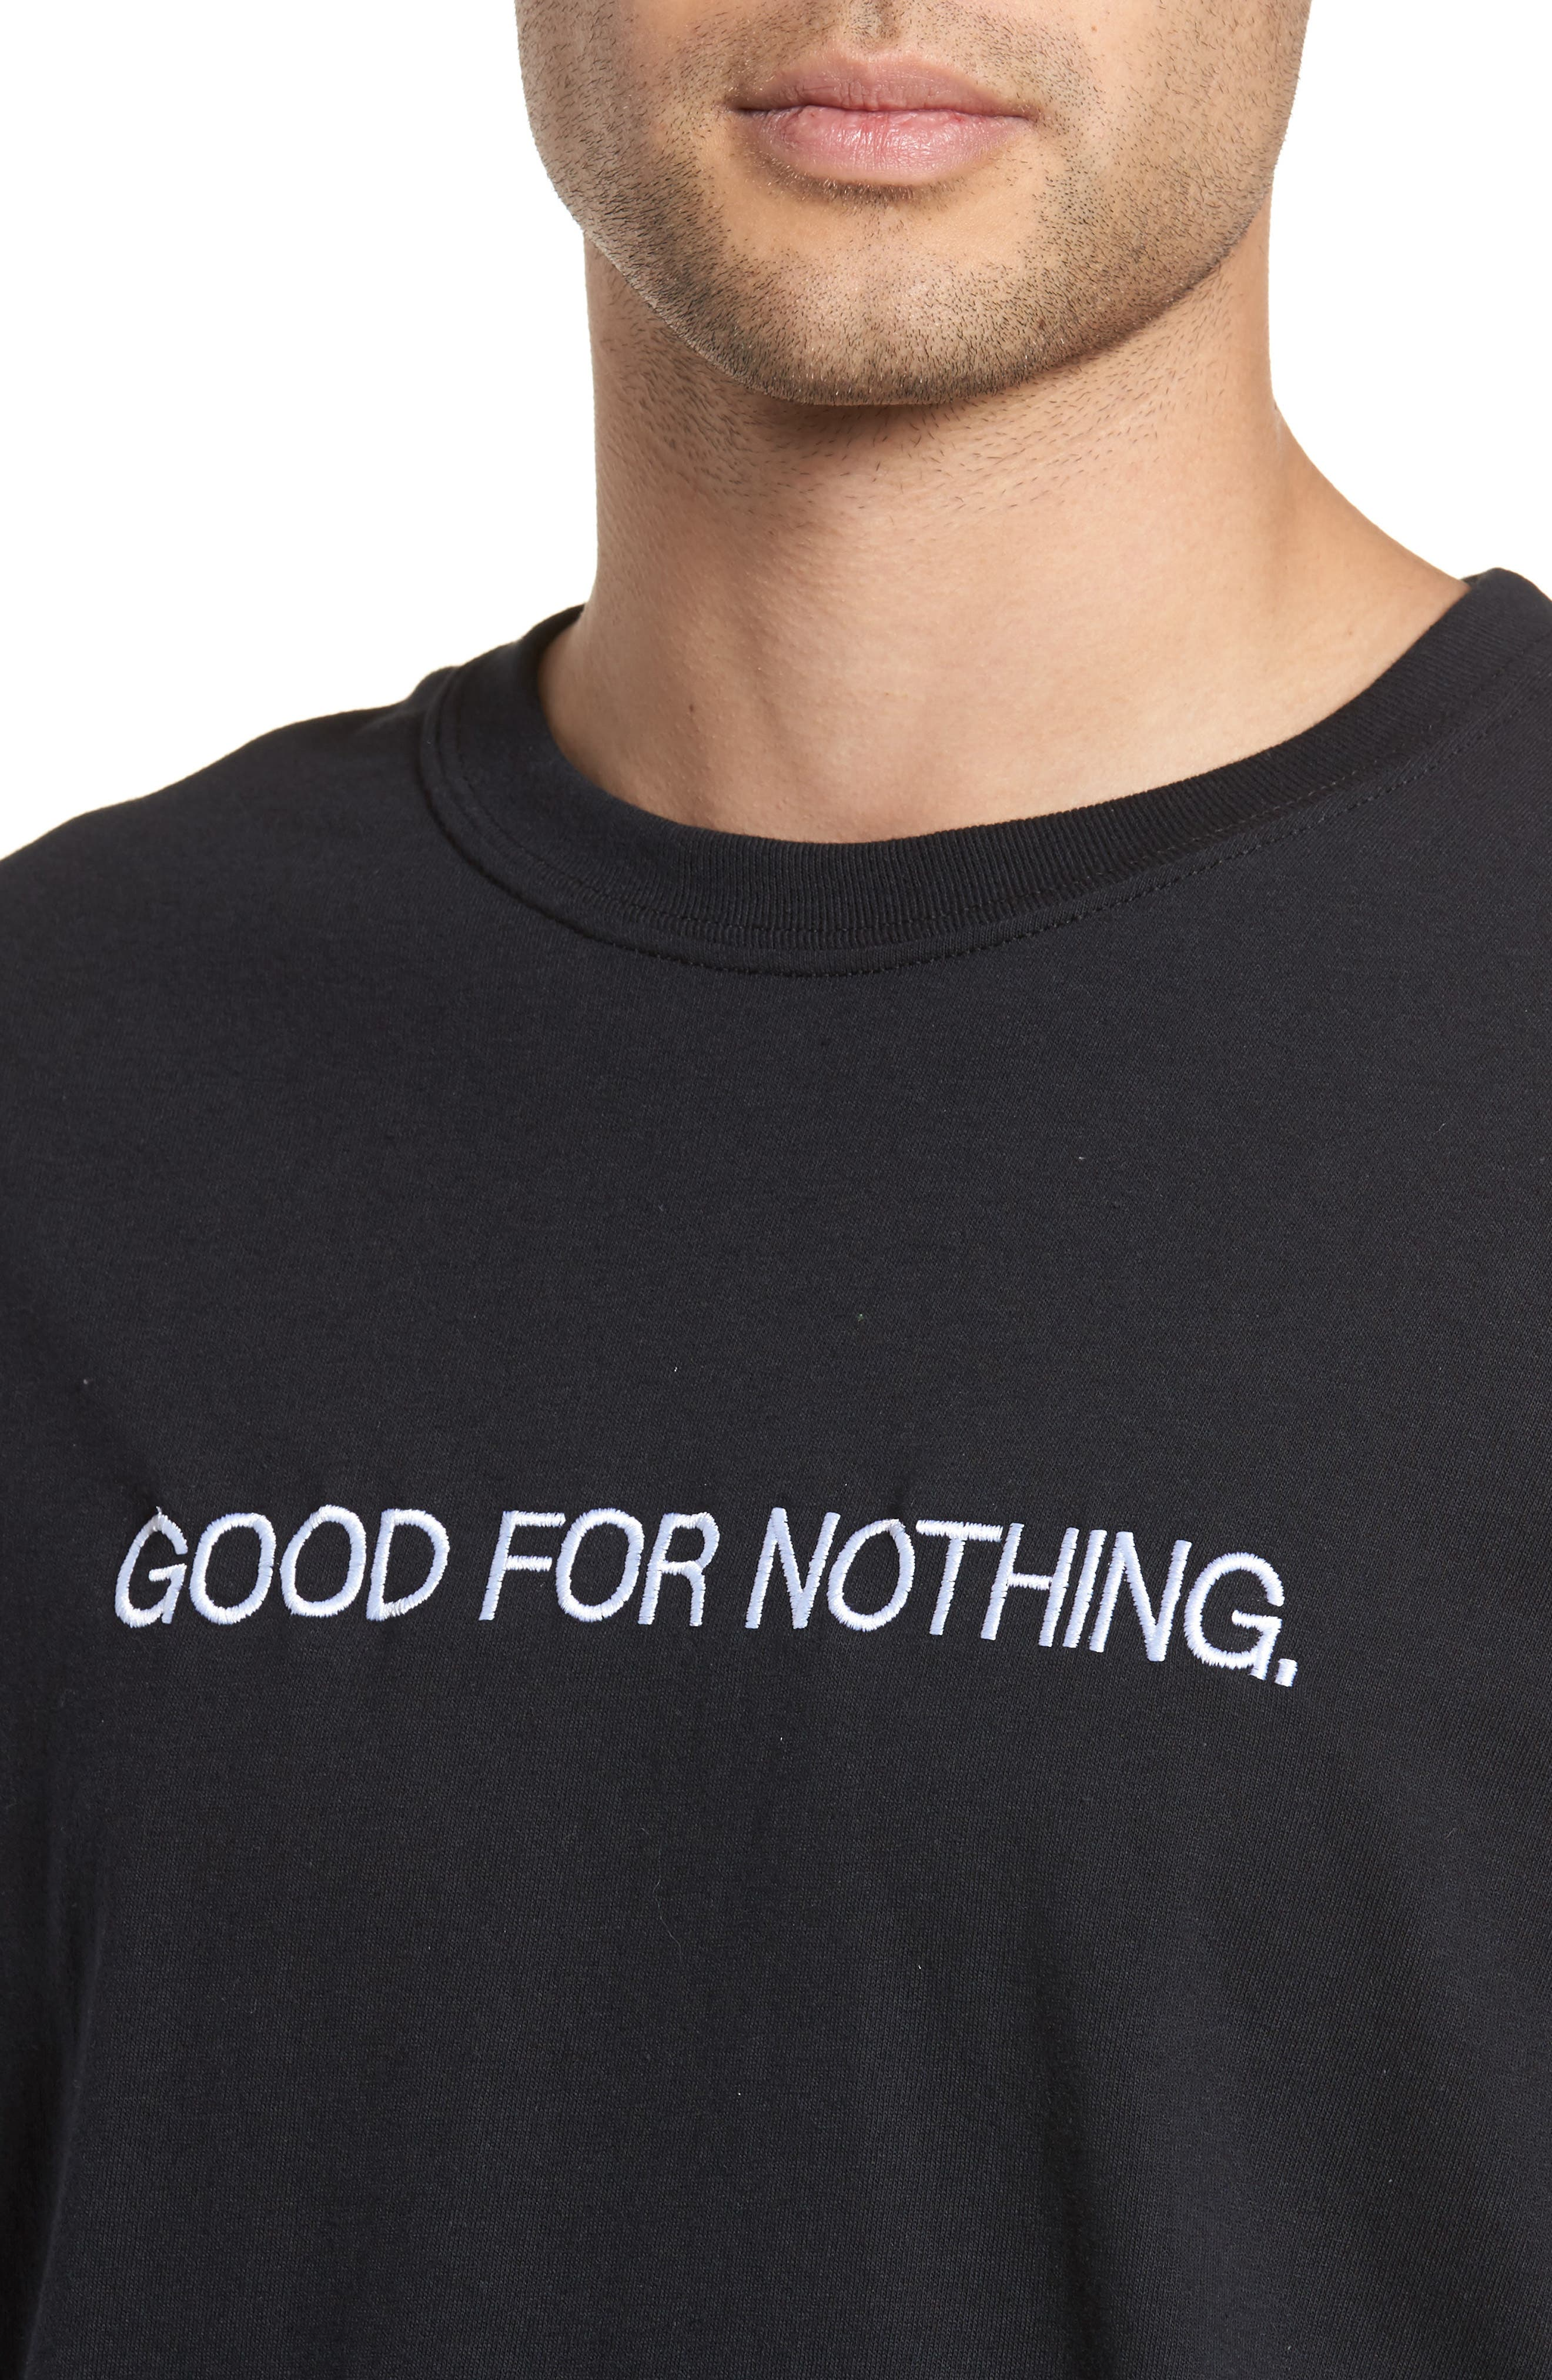 Good for Nothing Embroidered T-Shirt,                             Alternate thumbnail 4, color,                             001